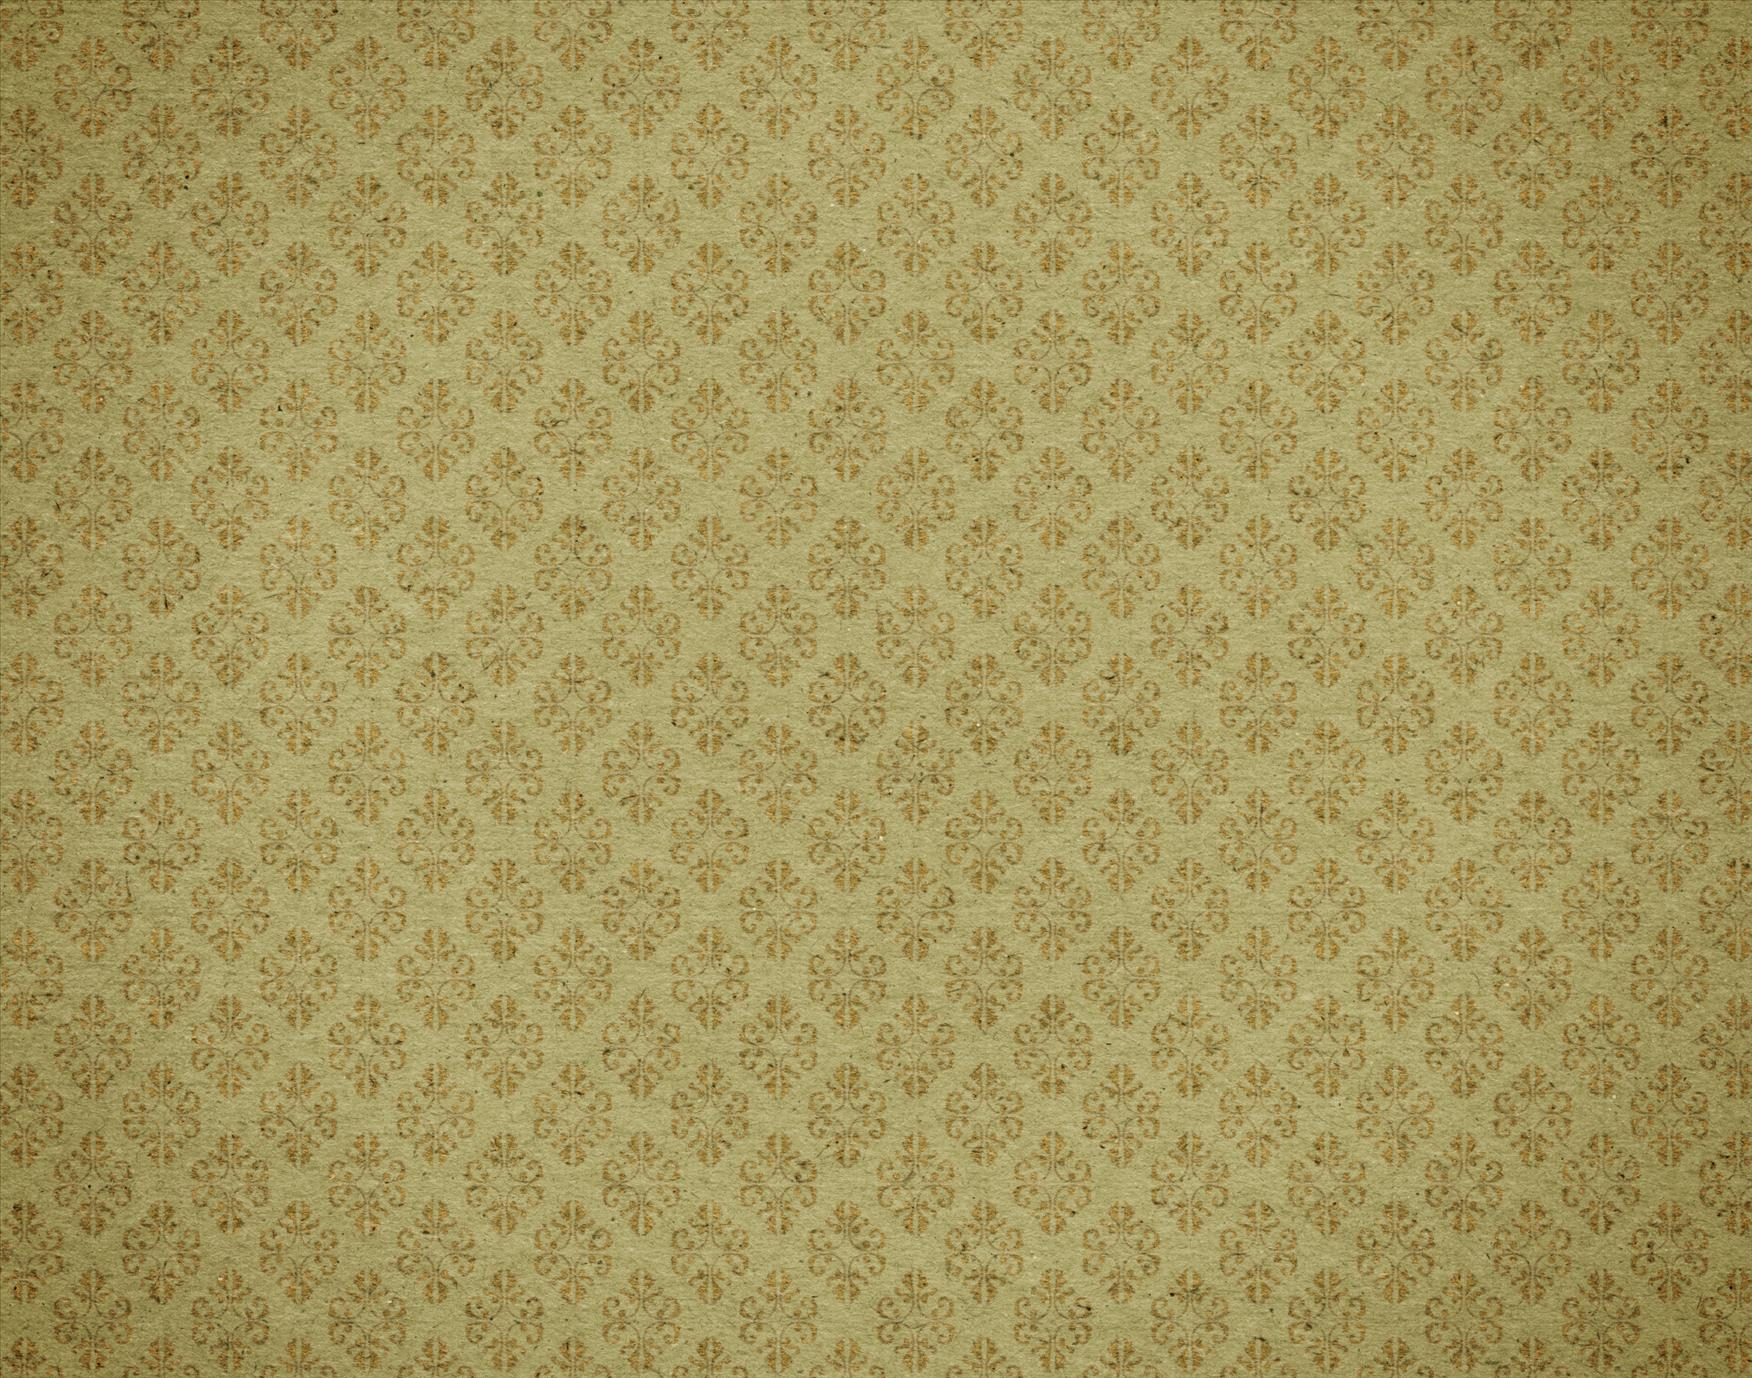 Vintage Wallpaper Backgrounds